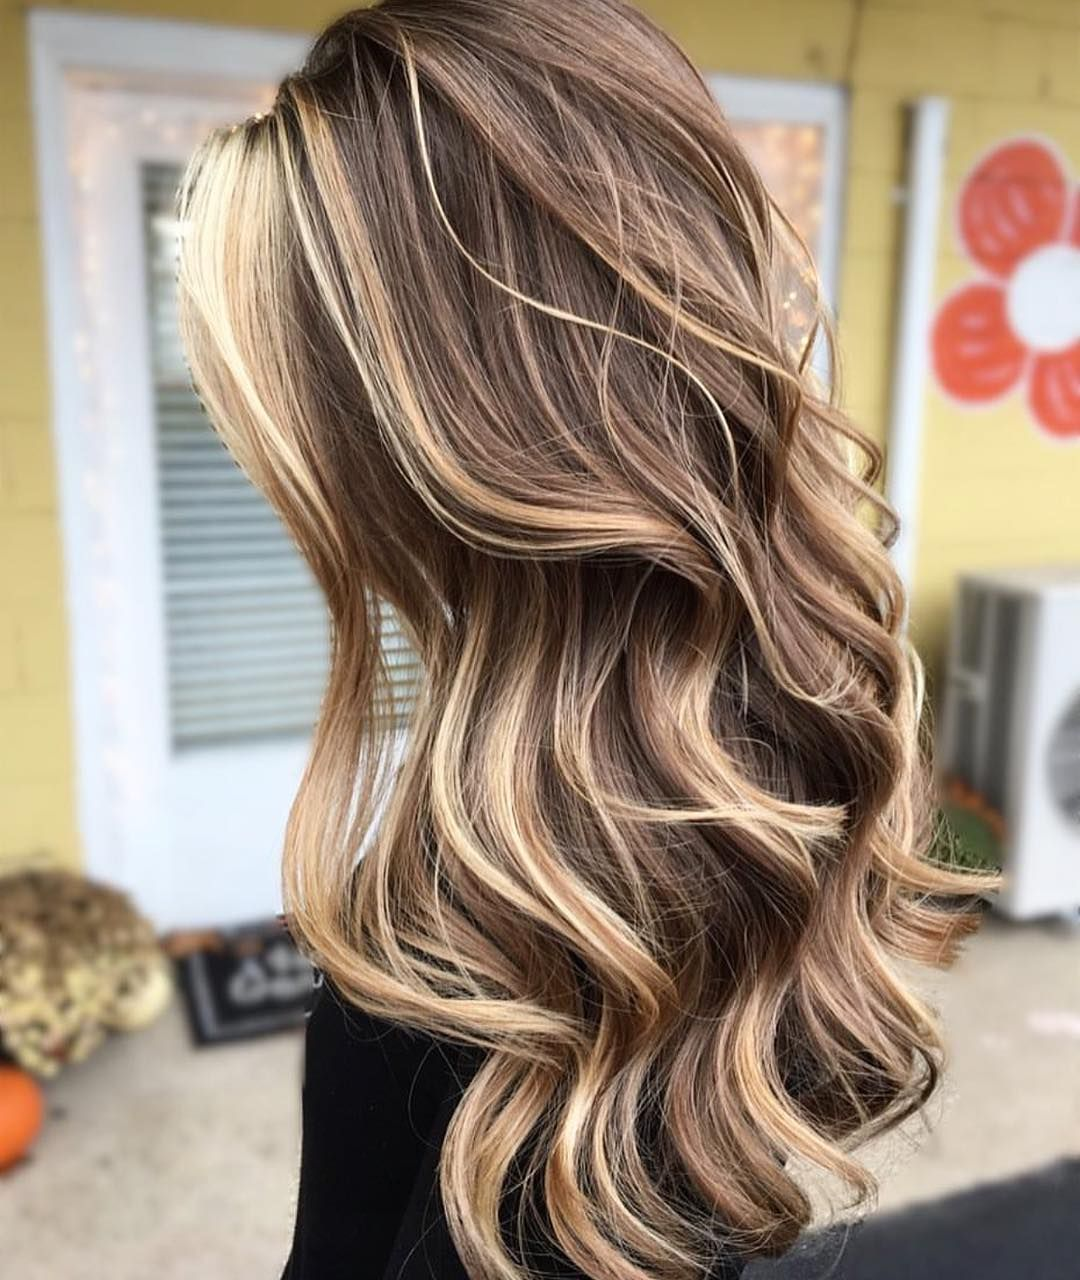 Pin by Stacy Stokes on Hairstyles  Pinterest